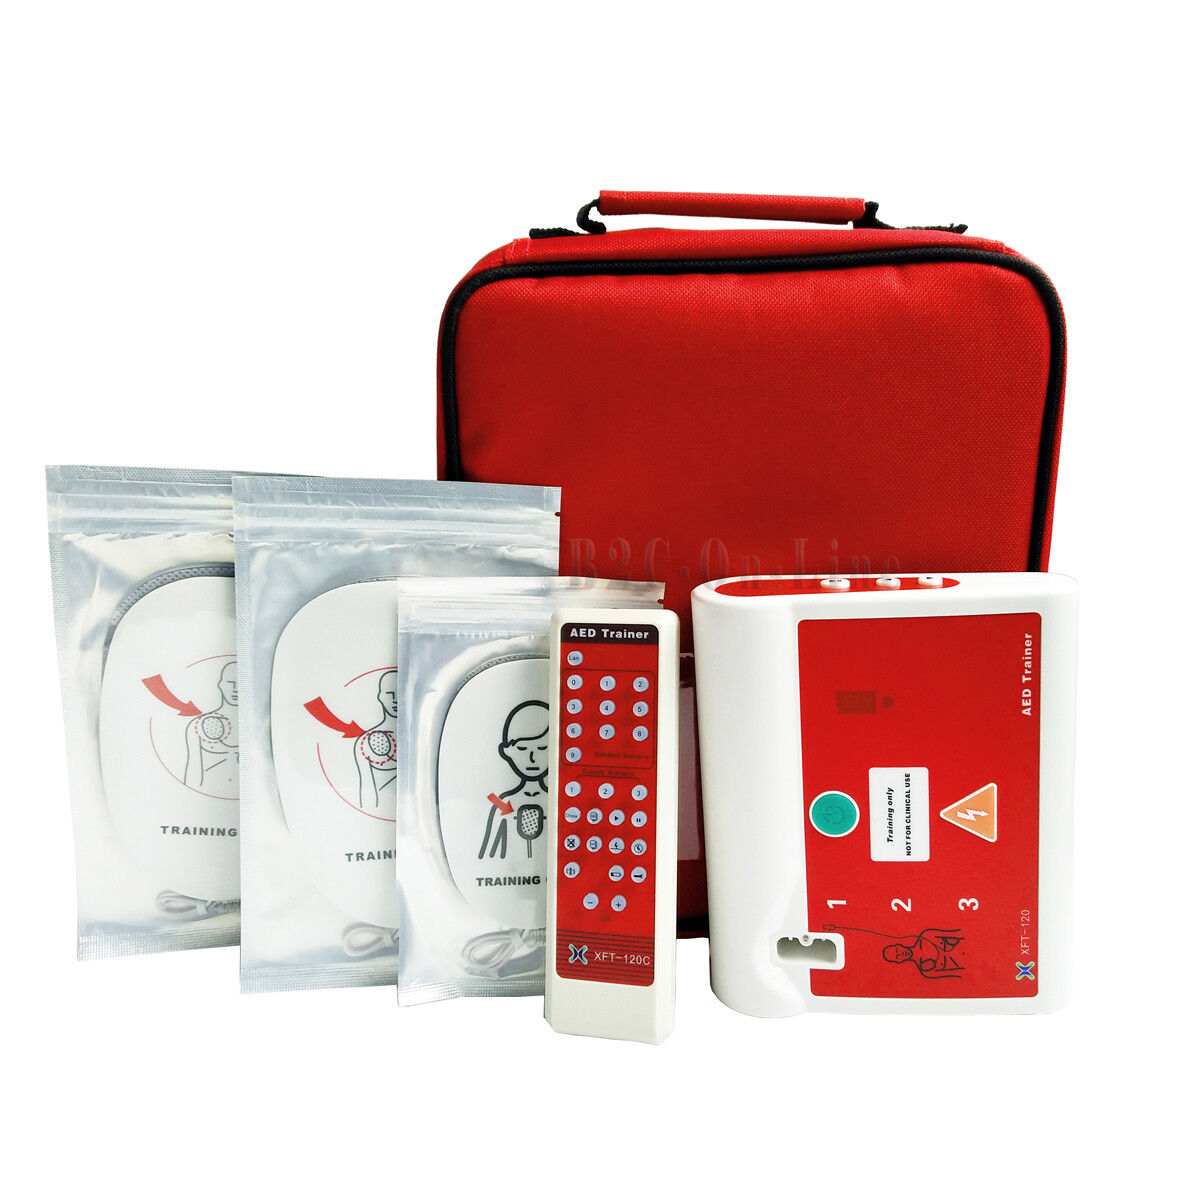 3 Units Aed Trainer First Aid Training Machine For Aed Cpr Course